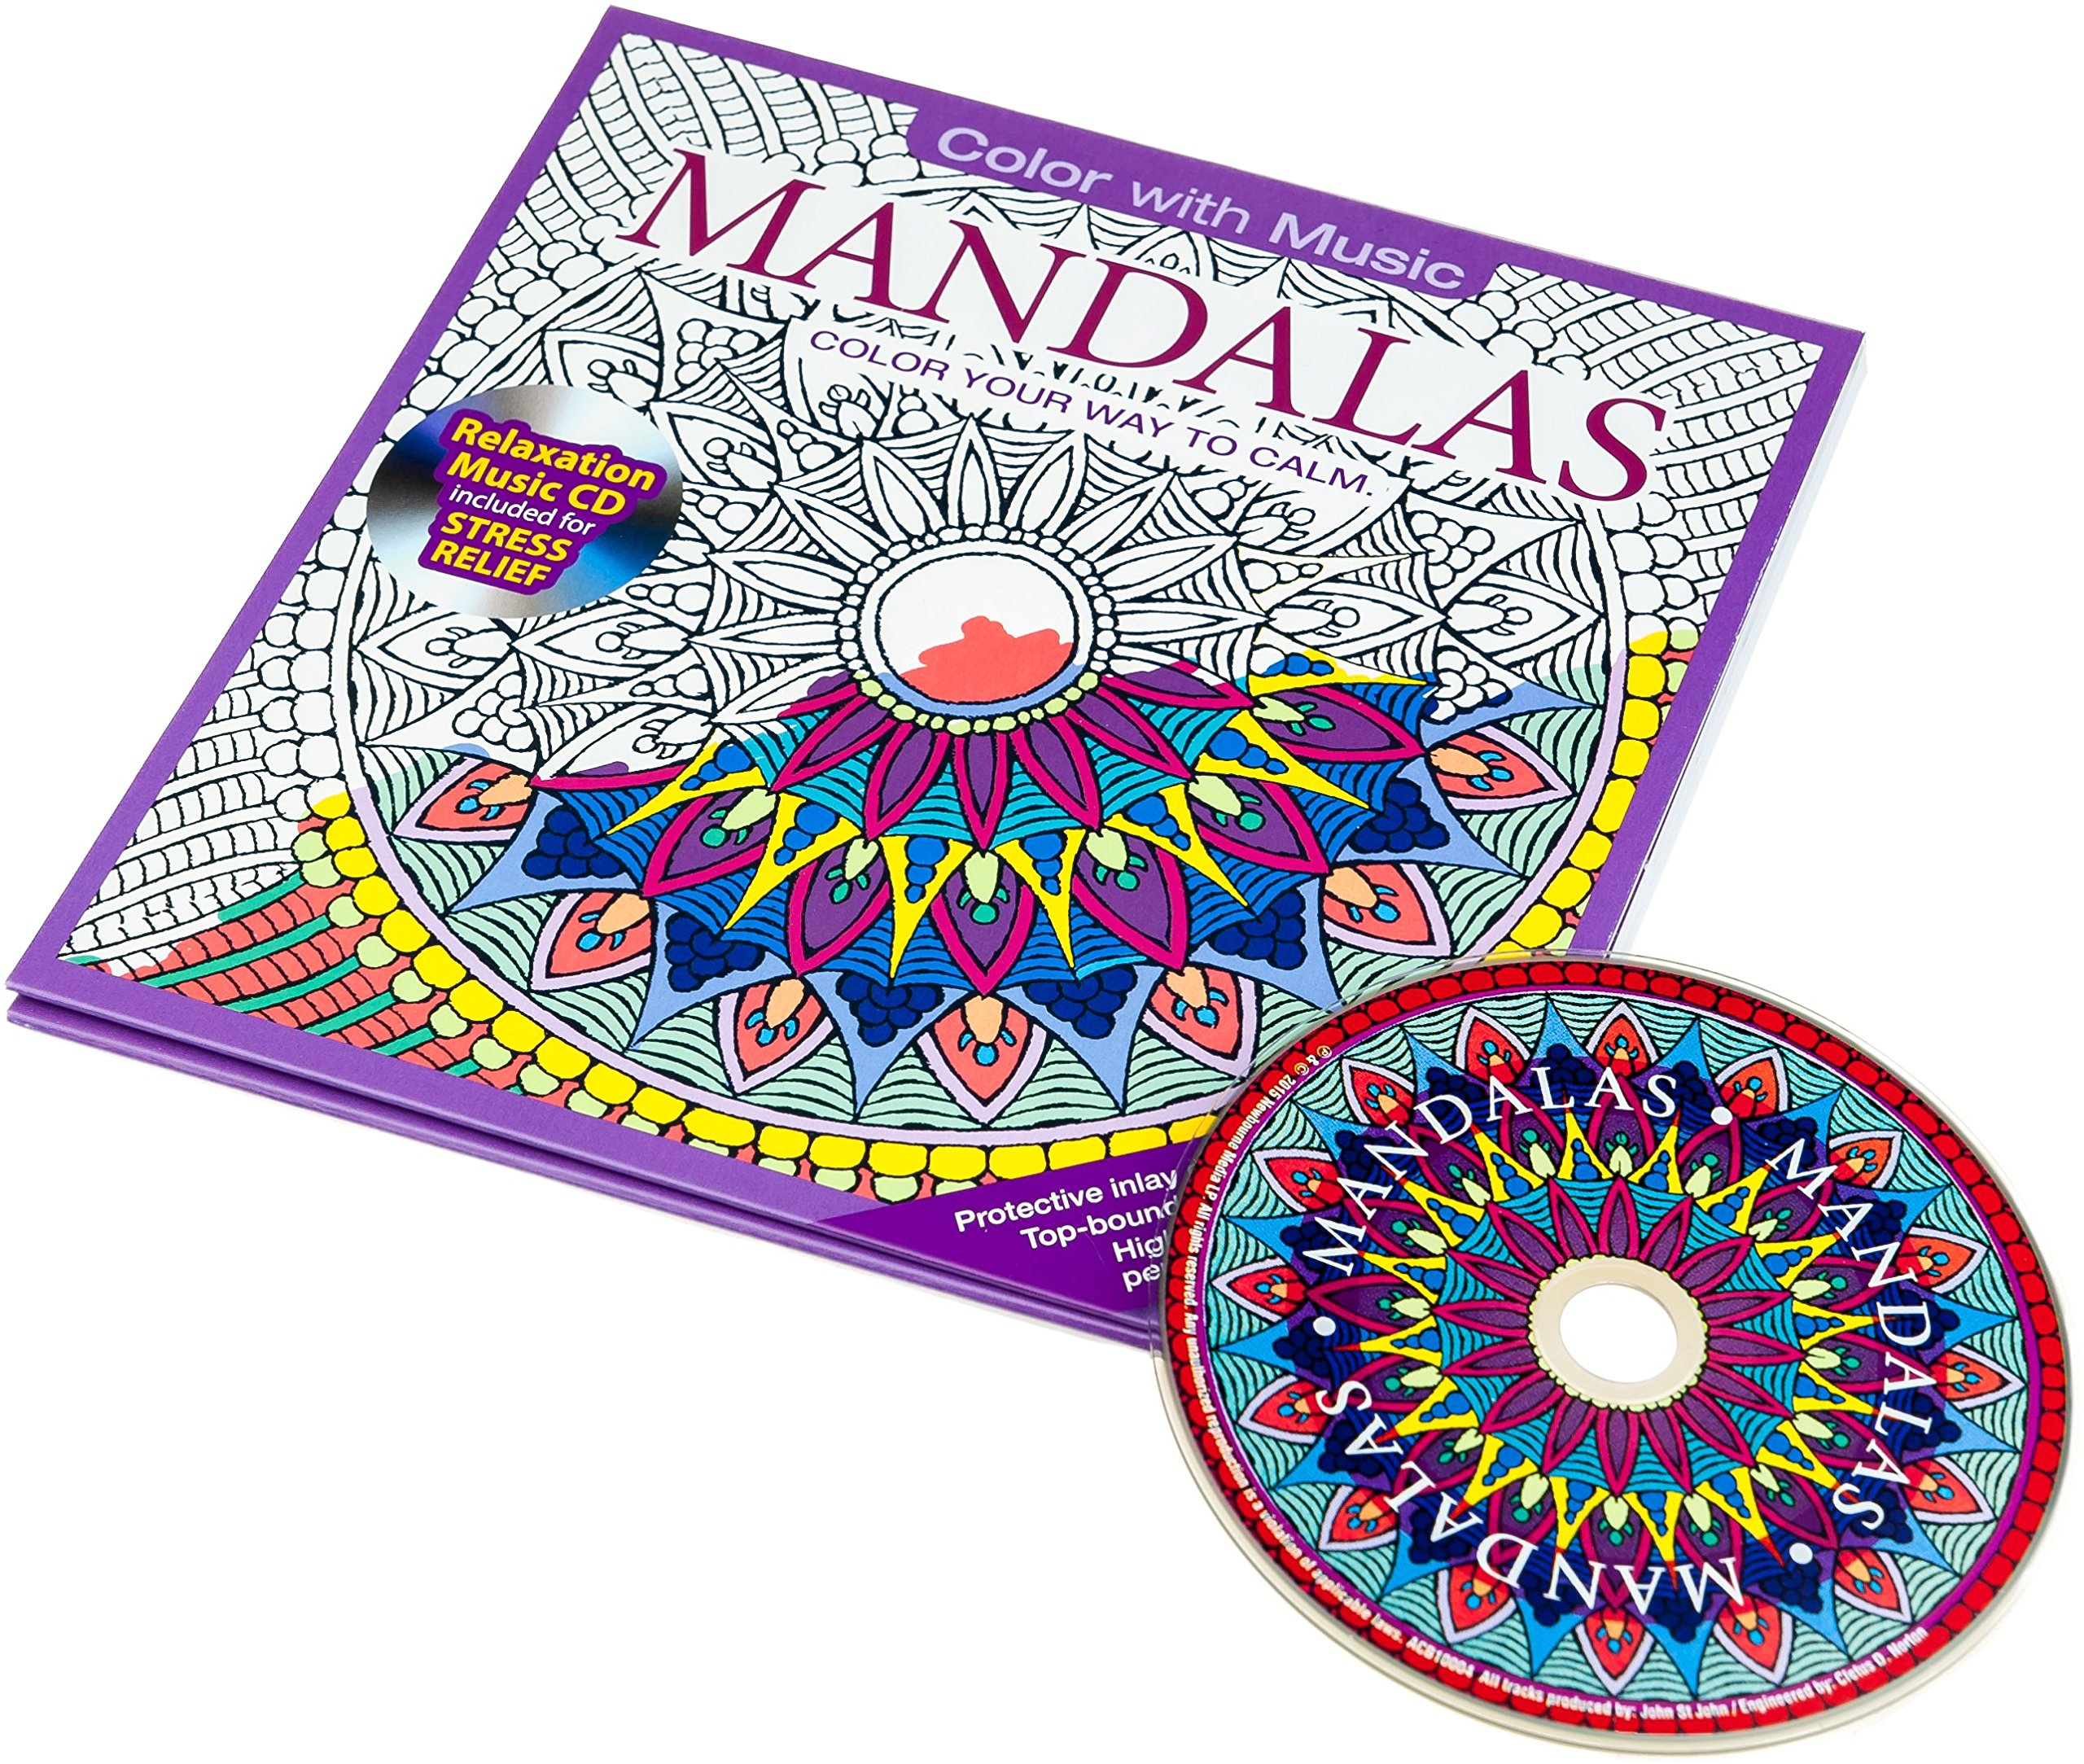 Amazon Mandalas Adult Coloring Book With Bonus Relaxation Music CD Included Color With Music Various Artists Books